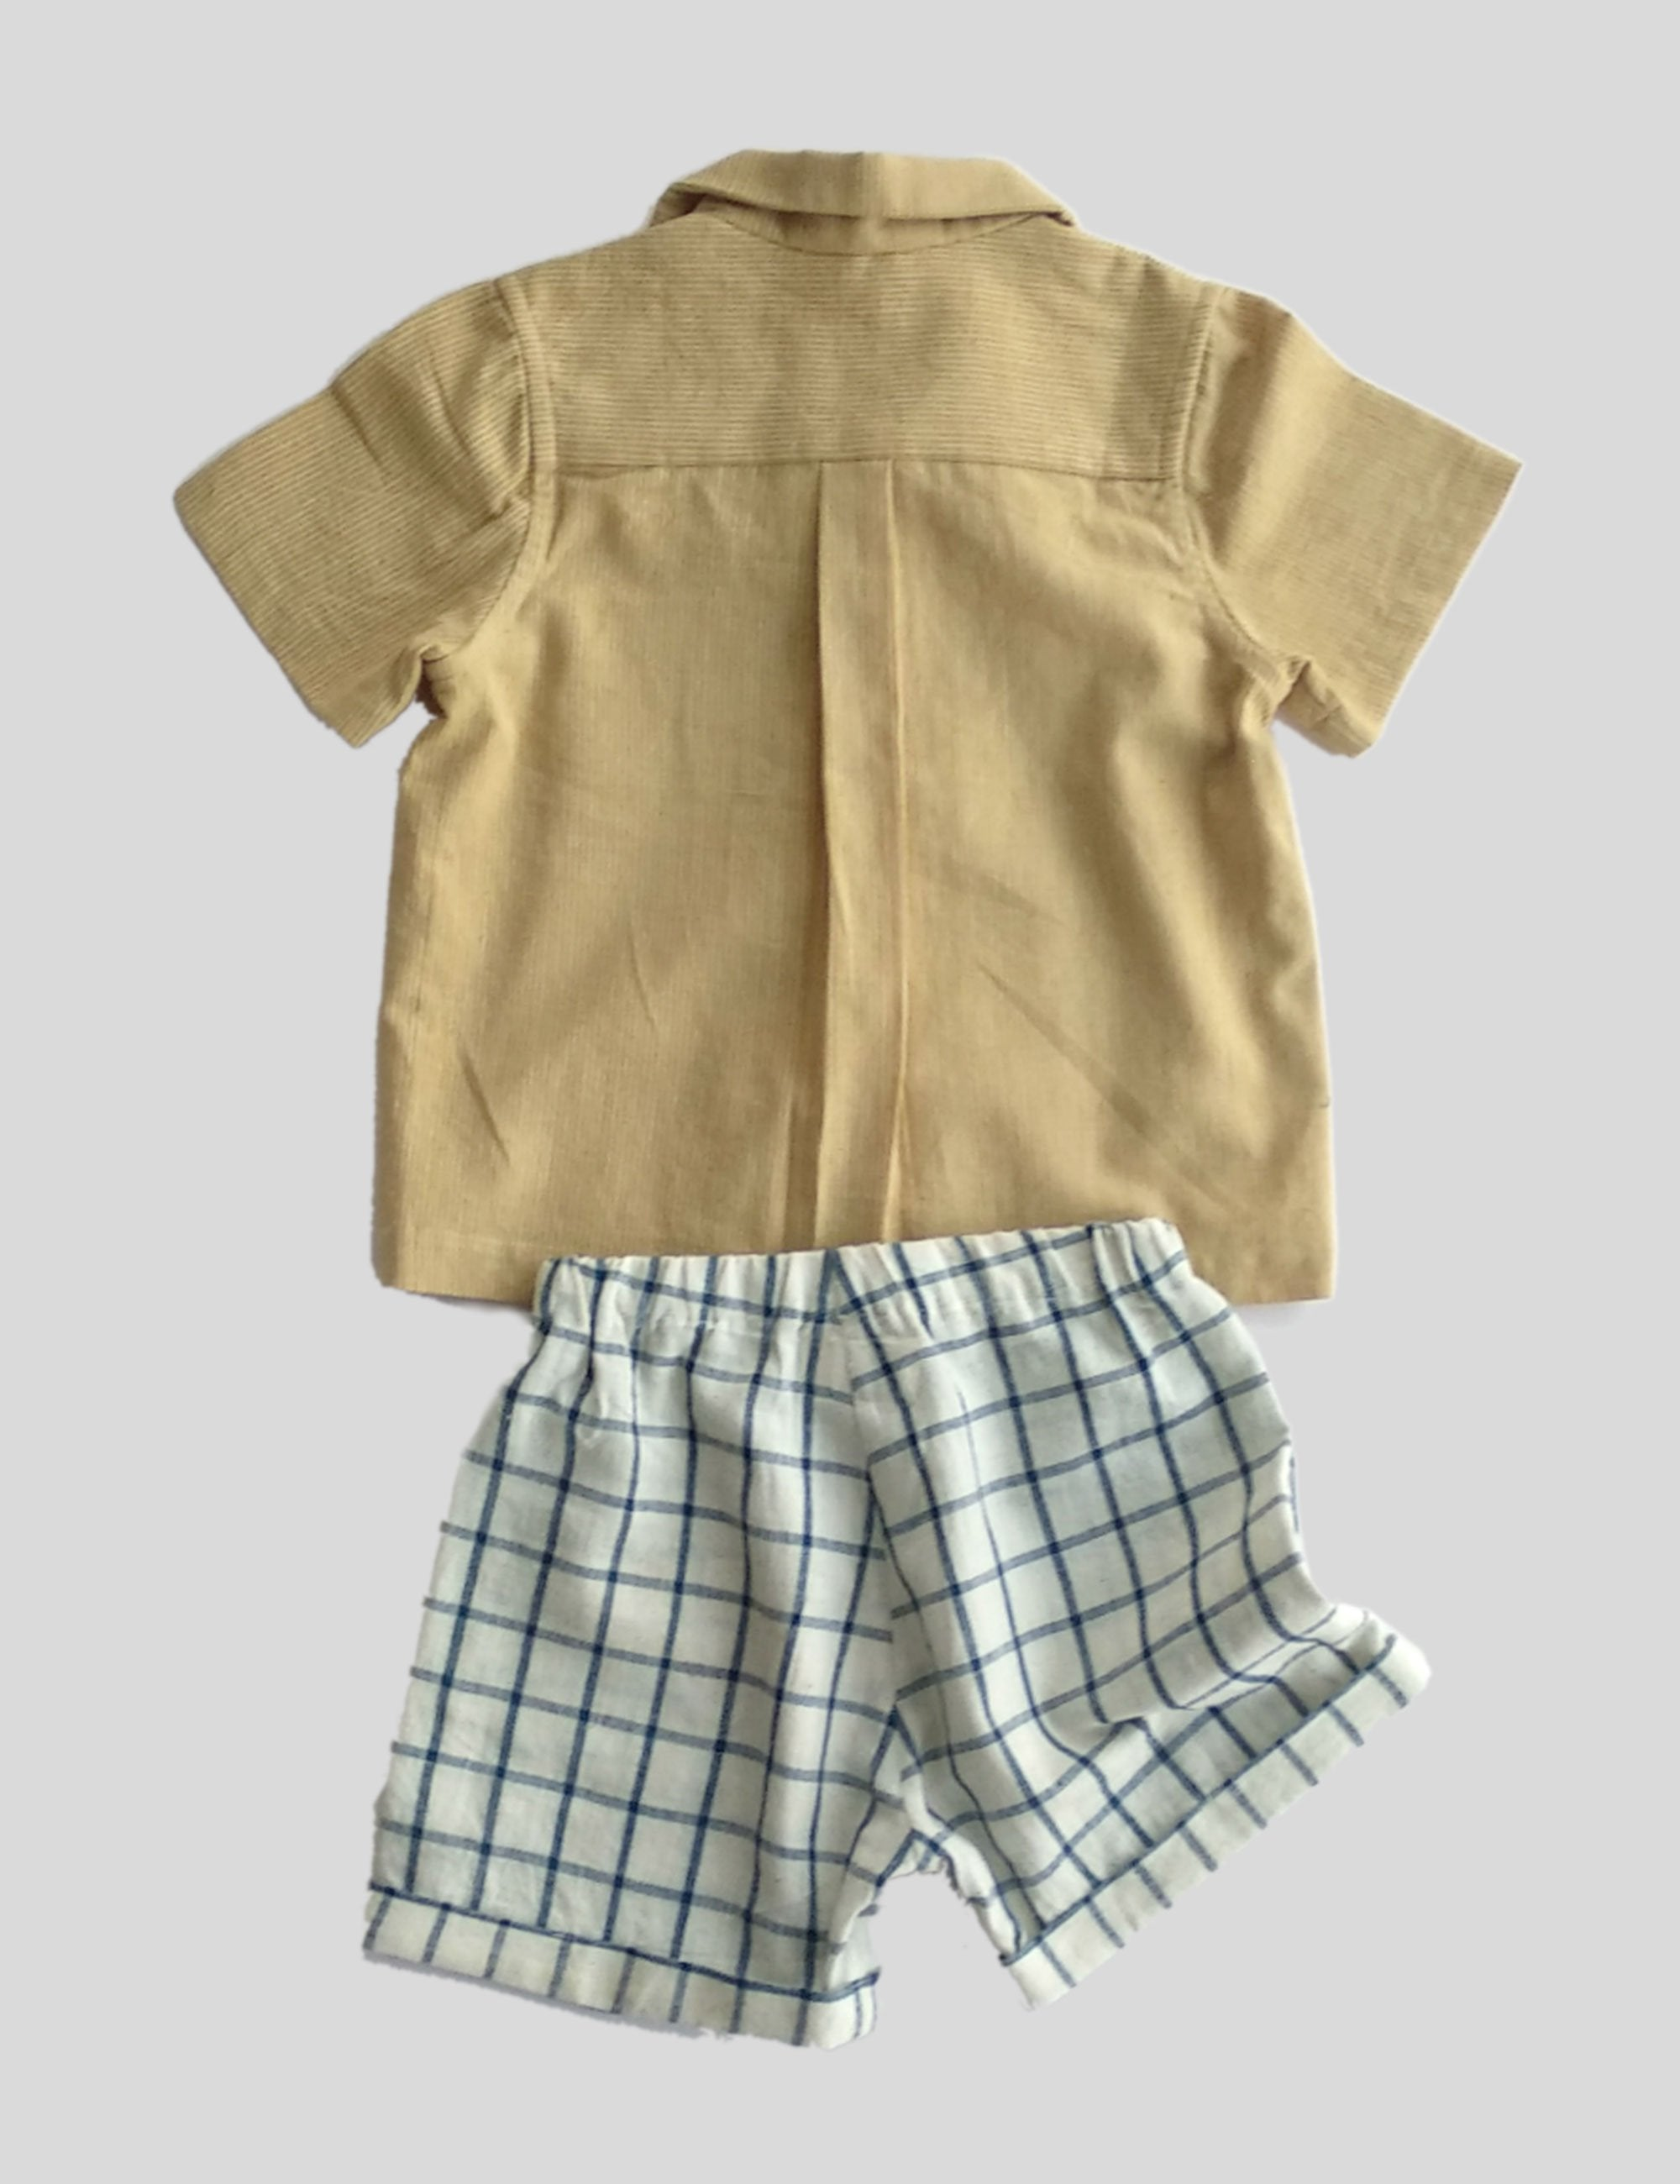 Convertible Collar Shirt Set with Half Sleeves in Ochre with Brown Checks Shorts for Boys